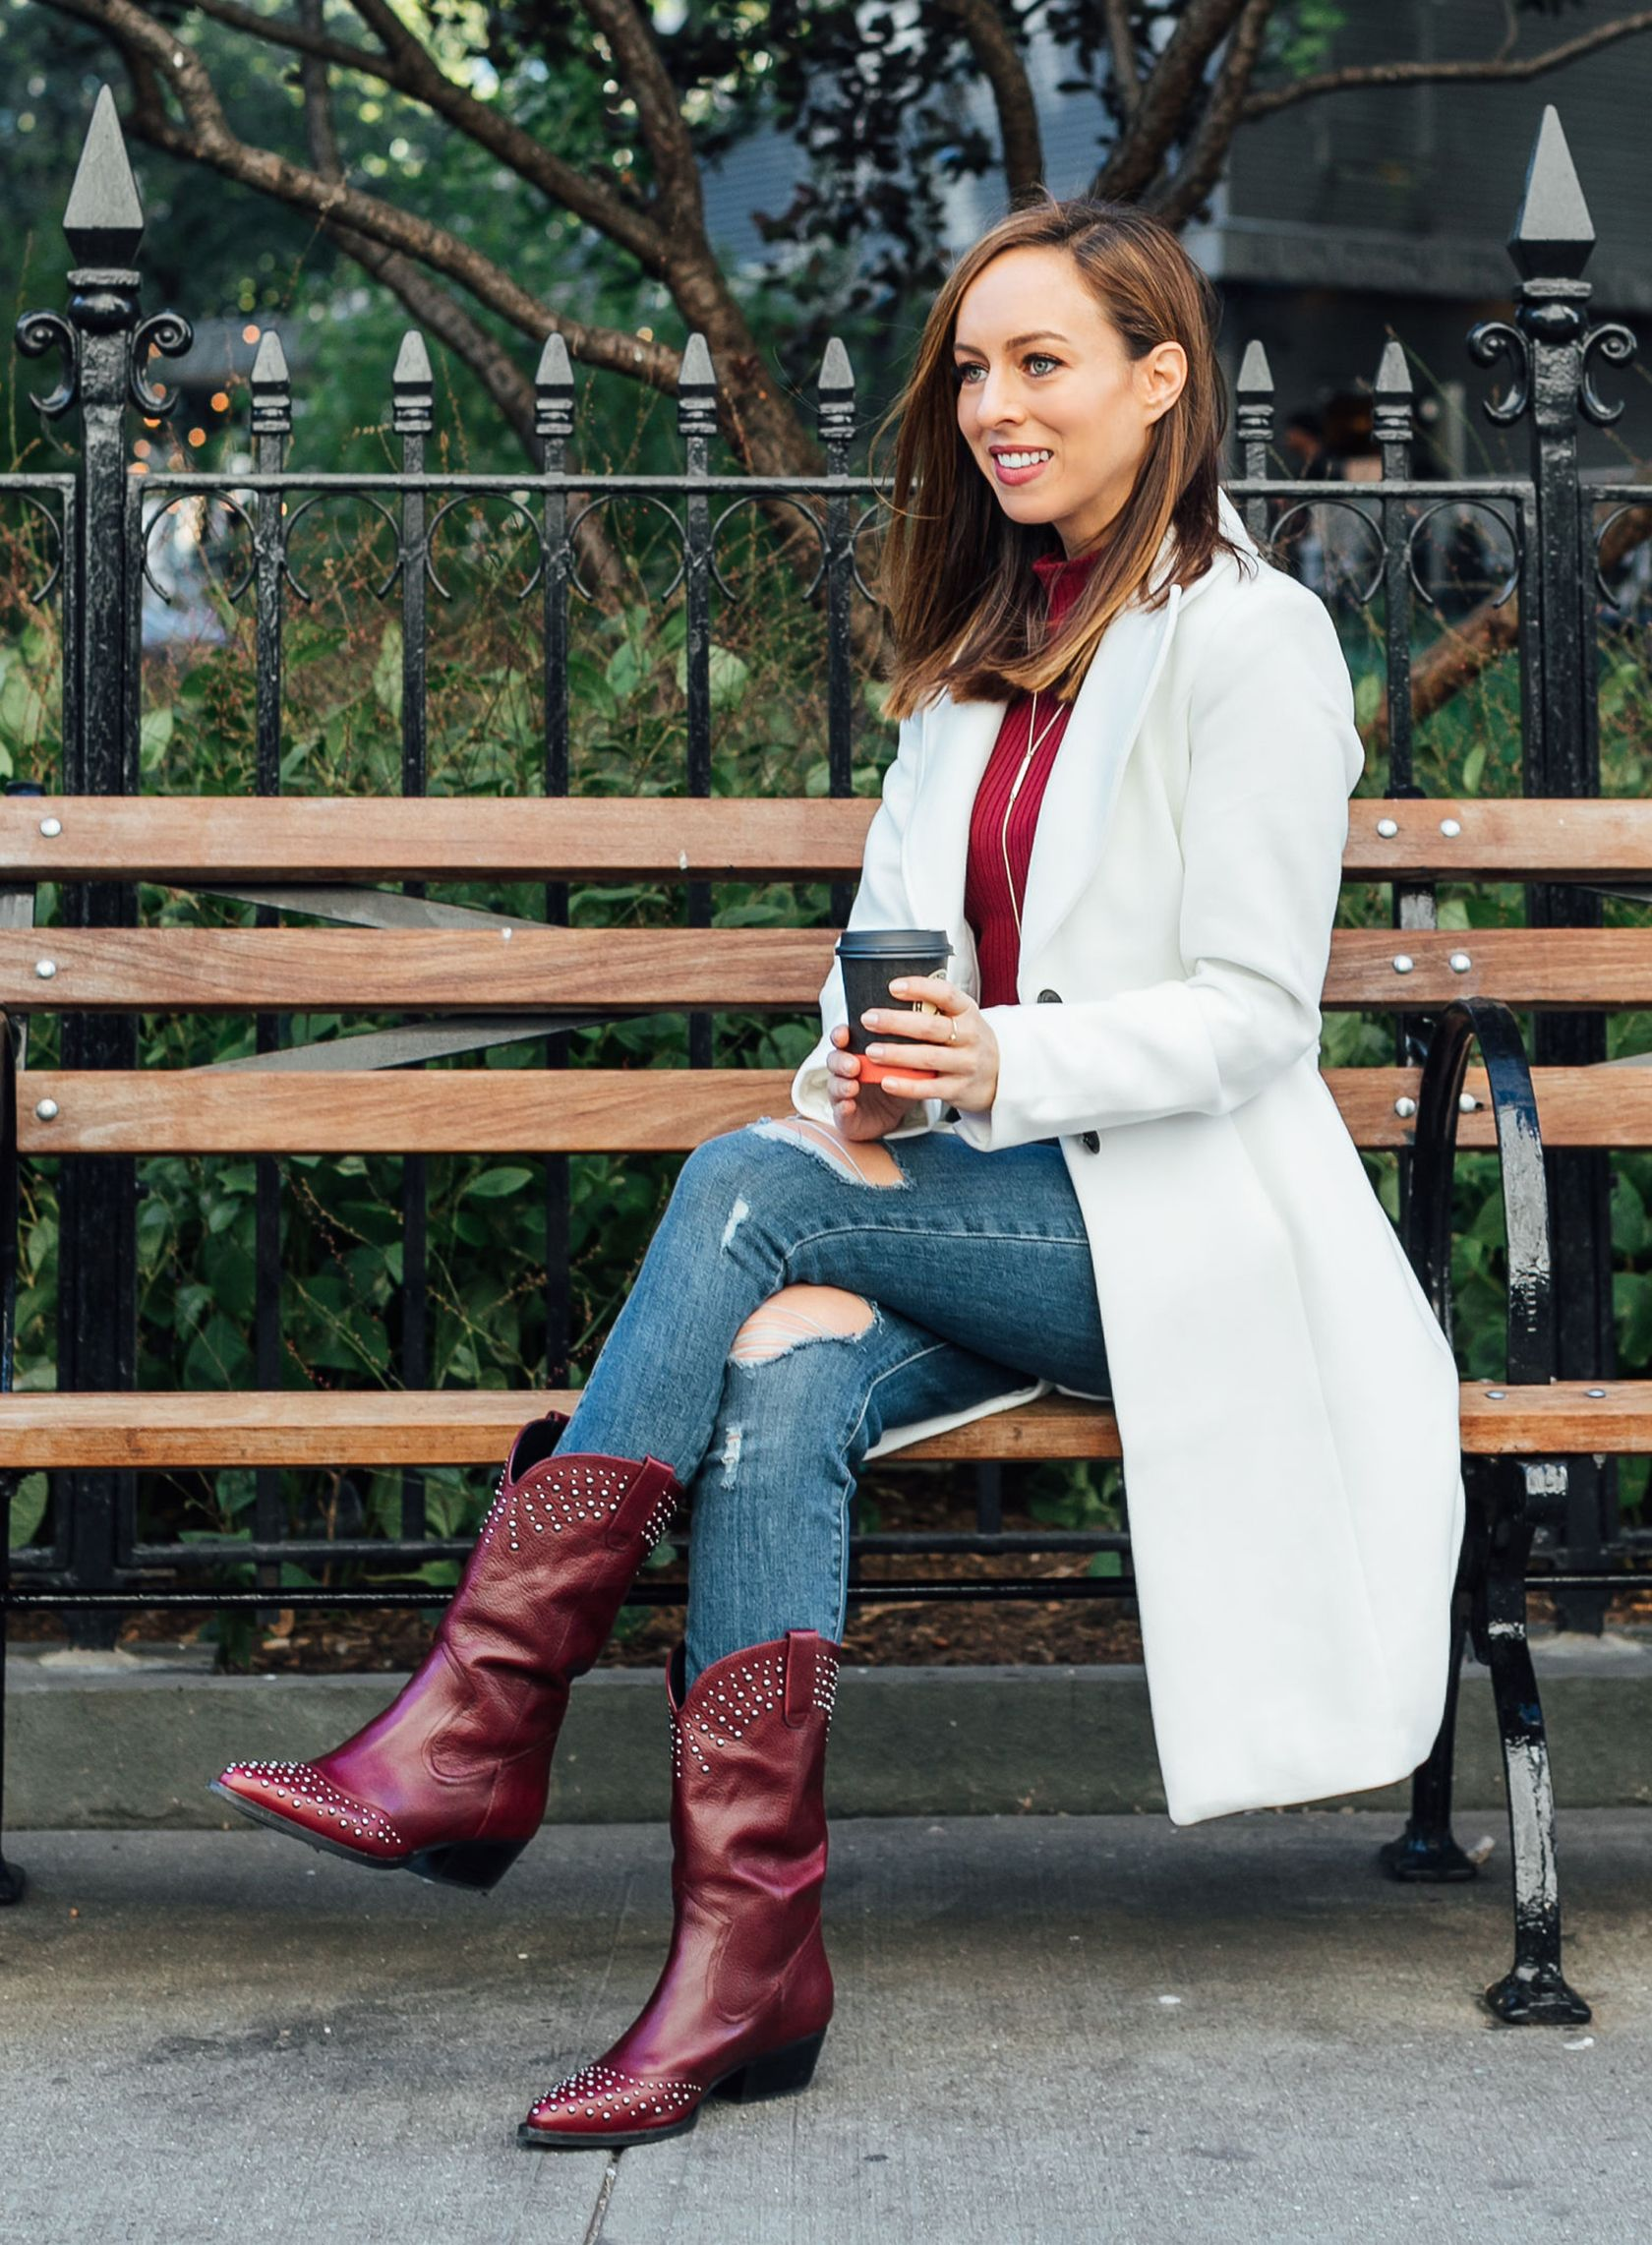 c9719b961011 Sydne Style shows how to wear cowboy boots with jeans and white coat  coats   jeans  boots  cowboyboots  sydnesummer